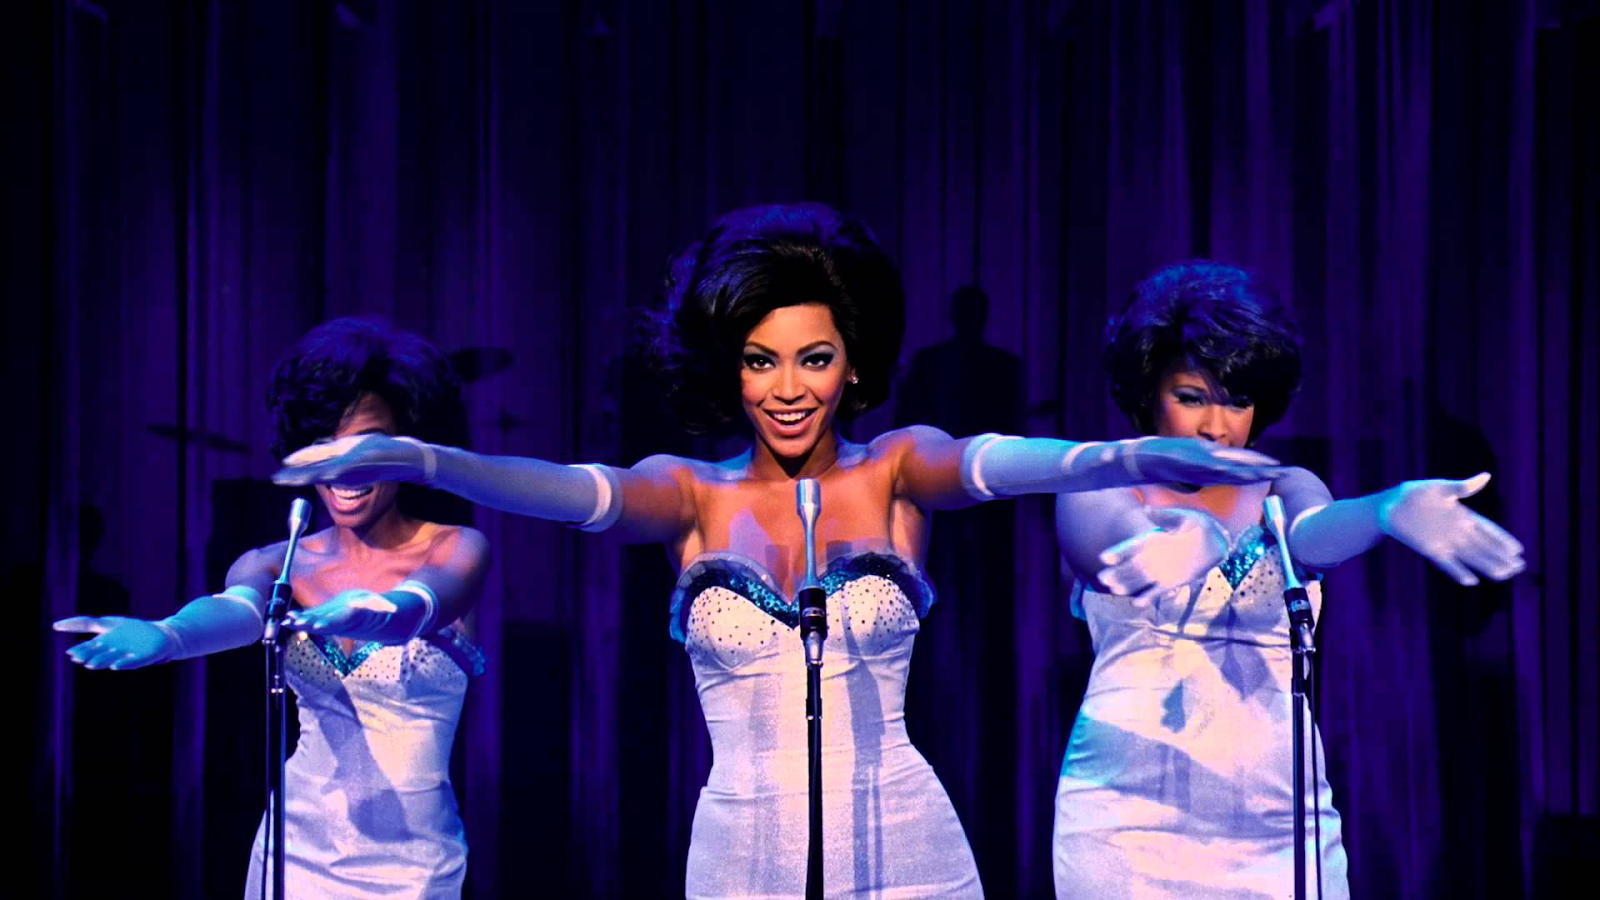 Source: YouTube, Dreamgirls Official Trailer